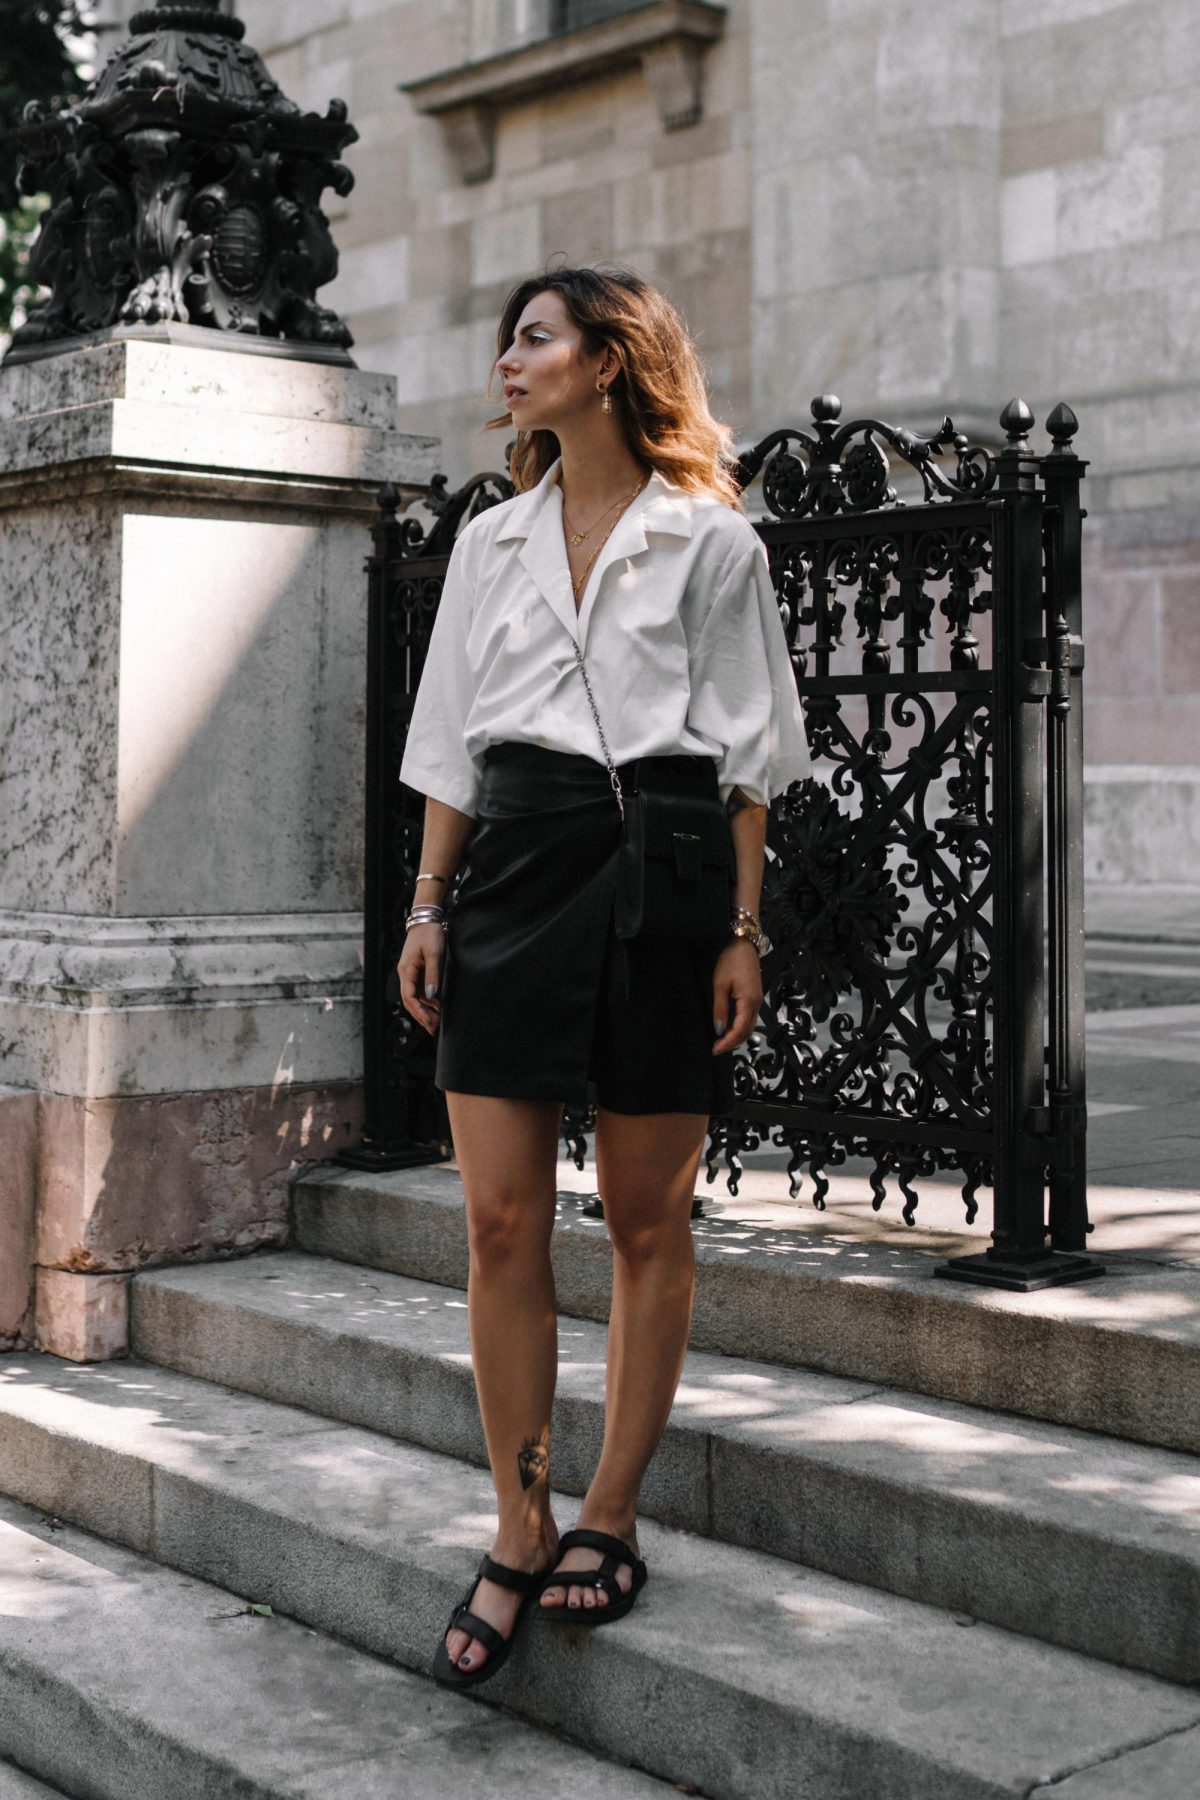 The Summer Leather Skirt